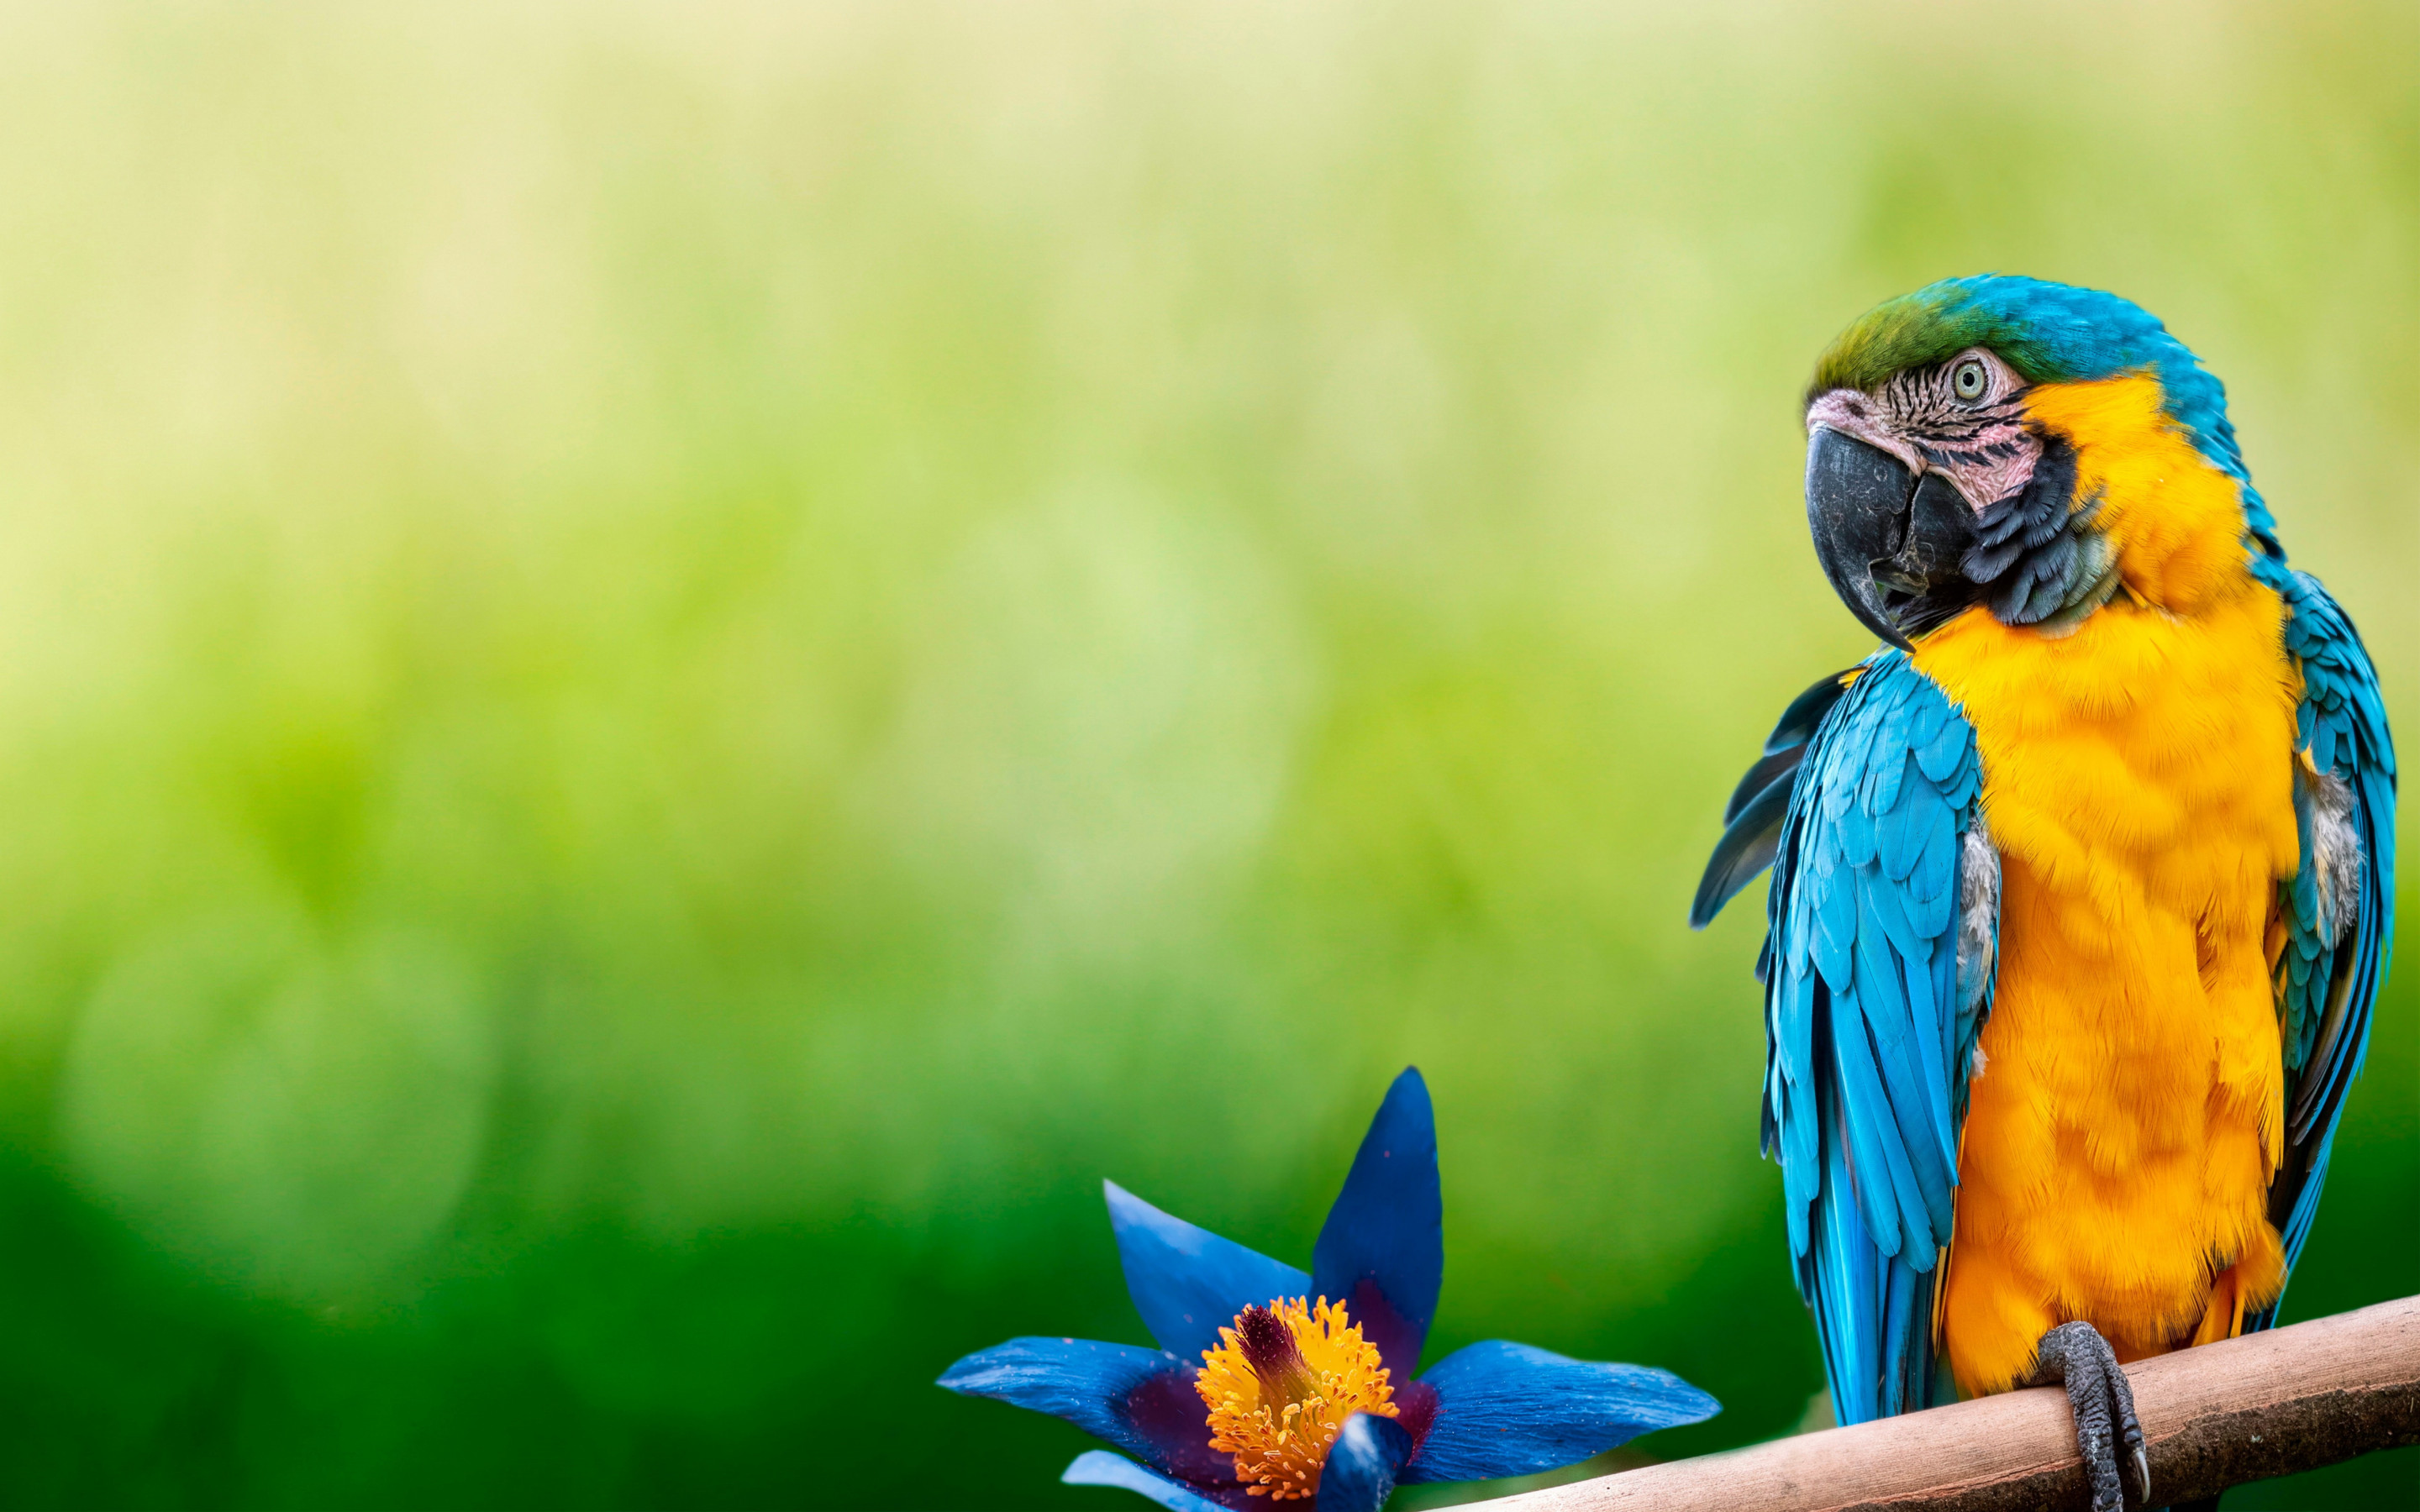 Beautiful Macaw parrot wallpaper 2880x1800